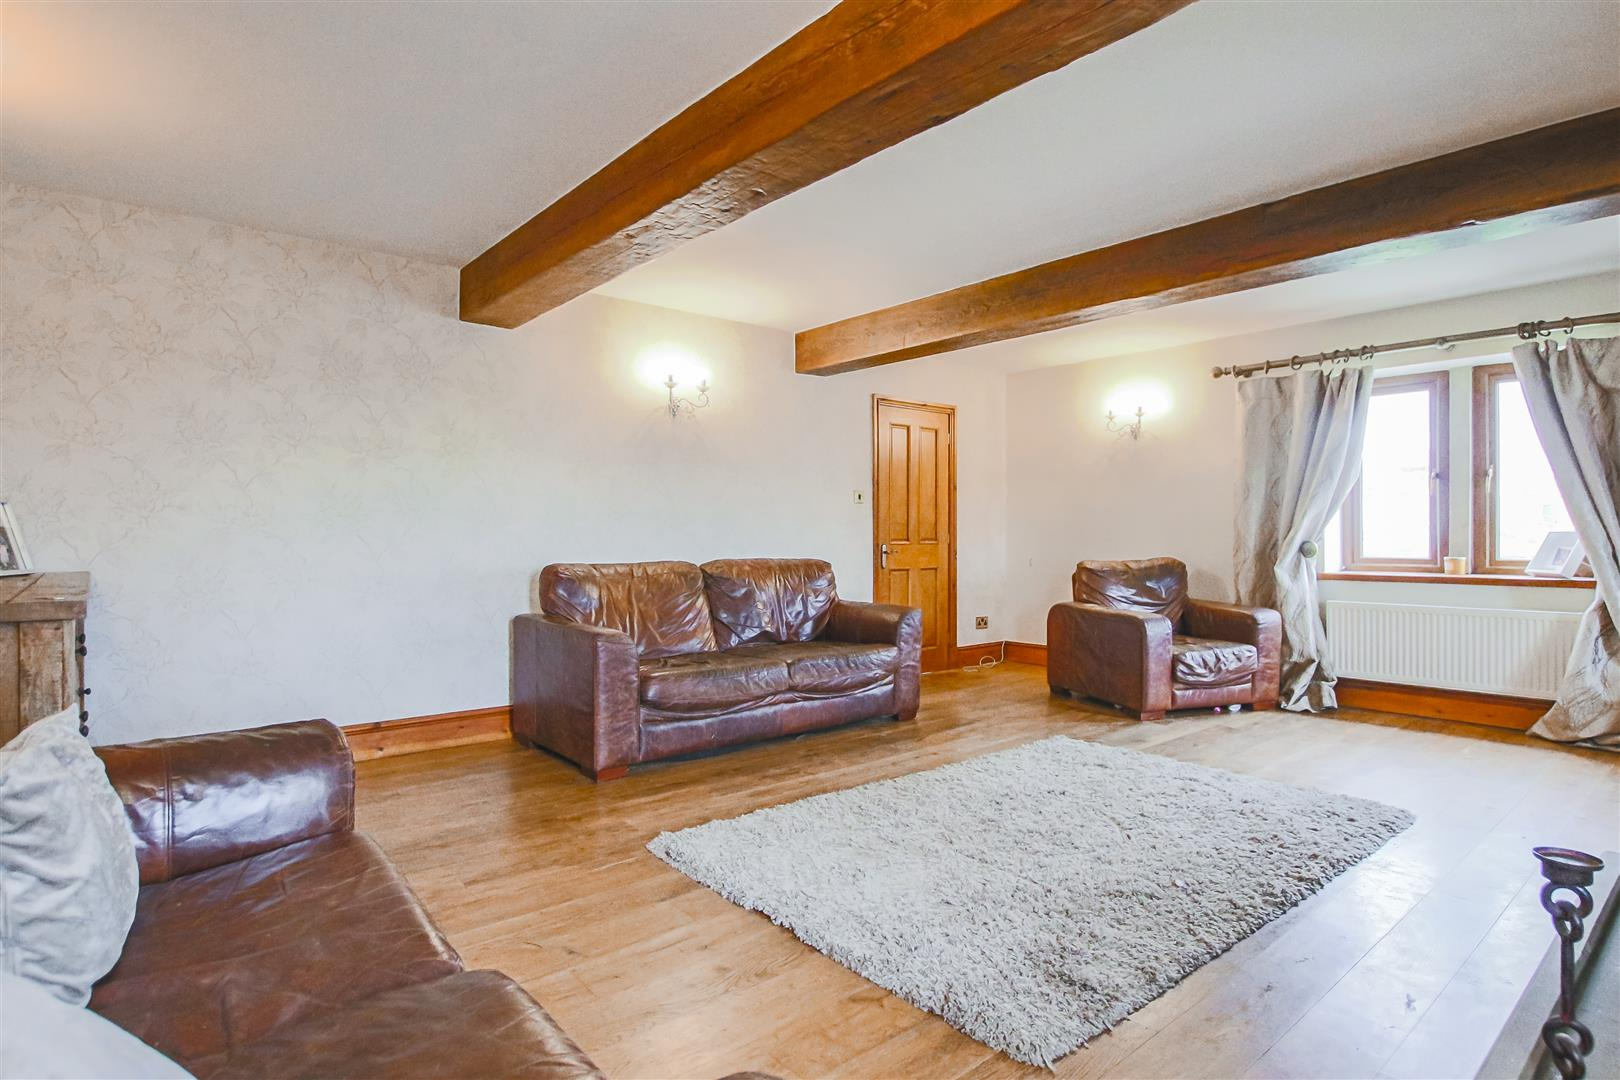 5 Bedroom Barn Conversion For Sale - Image 21